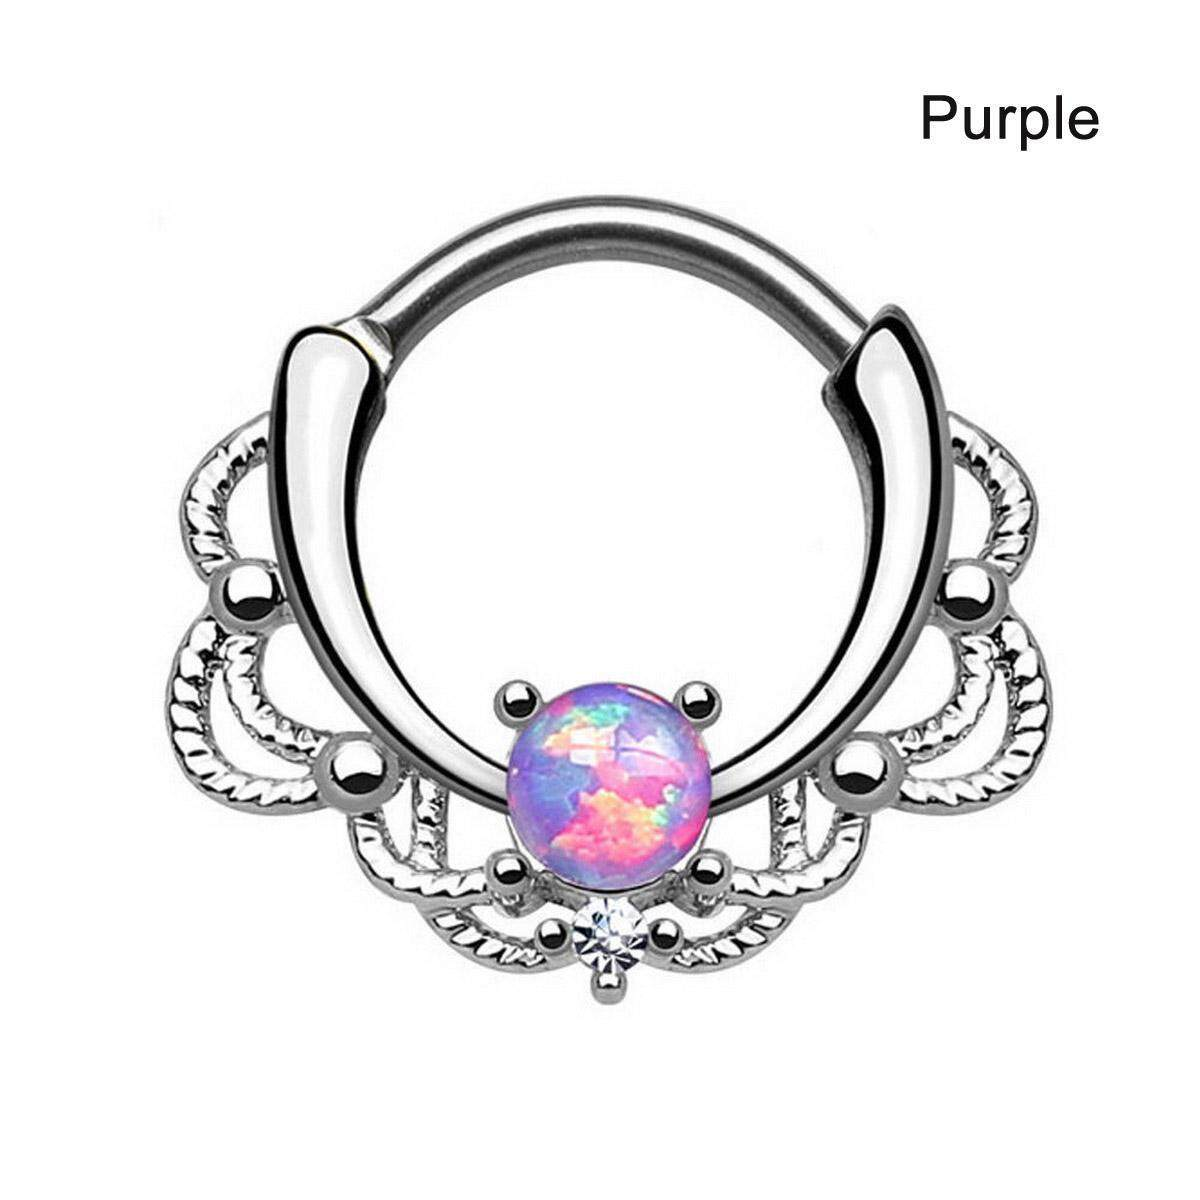 Trendy Nose Ring Vintage Gem Decorated Titanium Nose Hoop Piercing Ring Body Jewelry For Women Buy Online At Best Prices In Myanmar Shop Com Mm